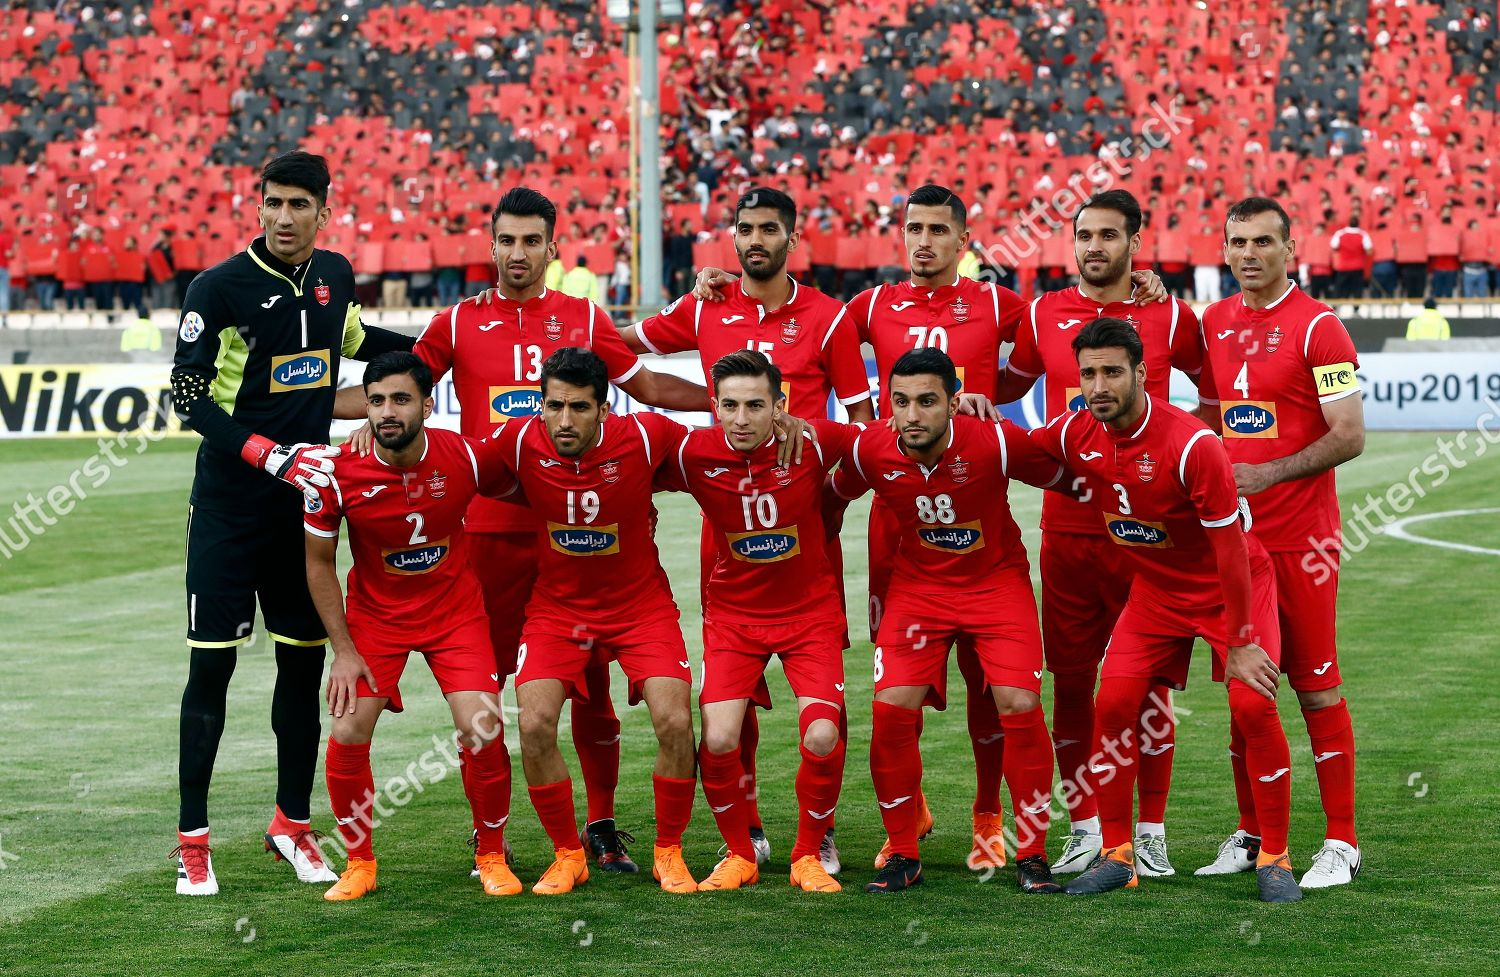 Players Persepolis Pose Team Picture Before Afc Editorial Stock Photo Stock Image Shutterstock